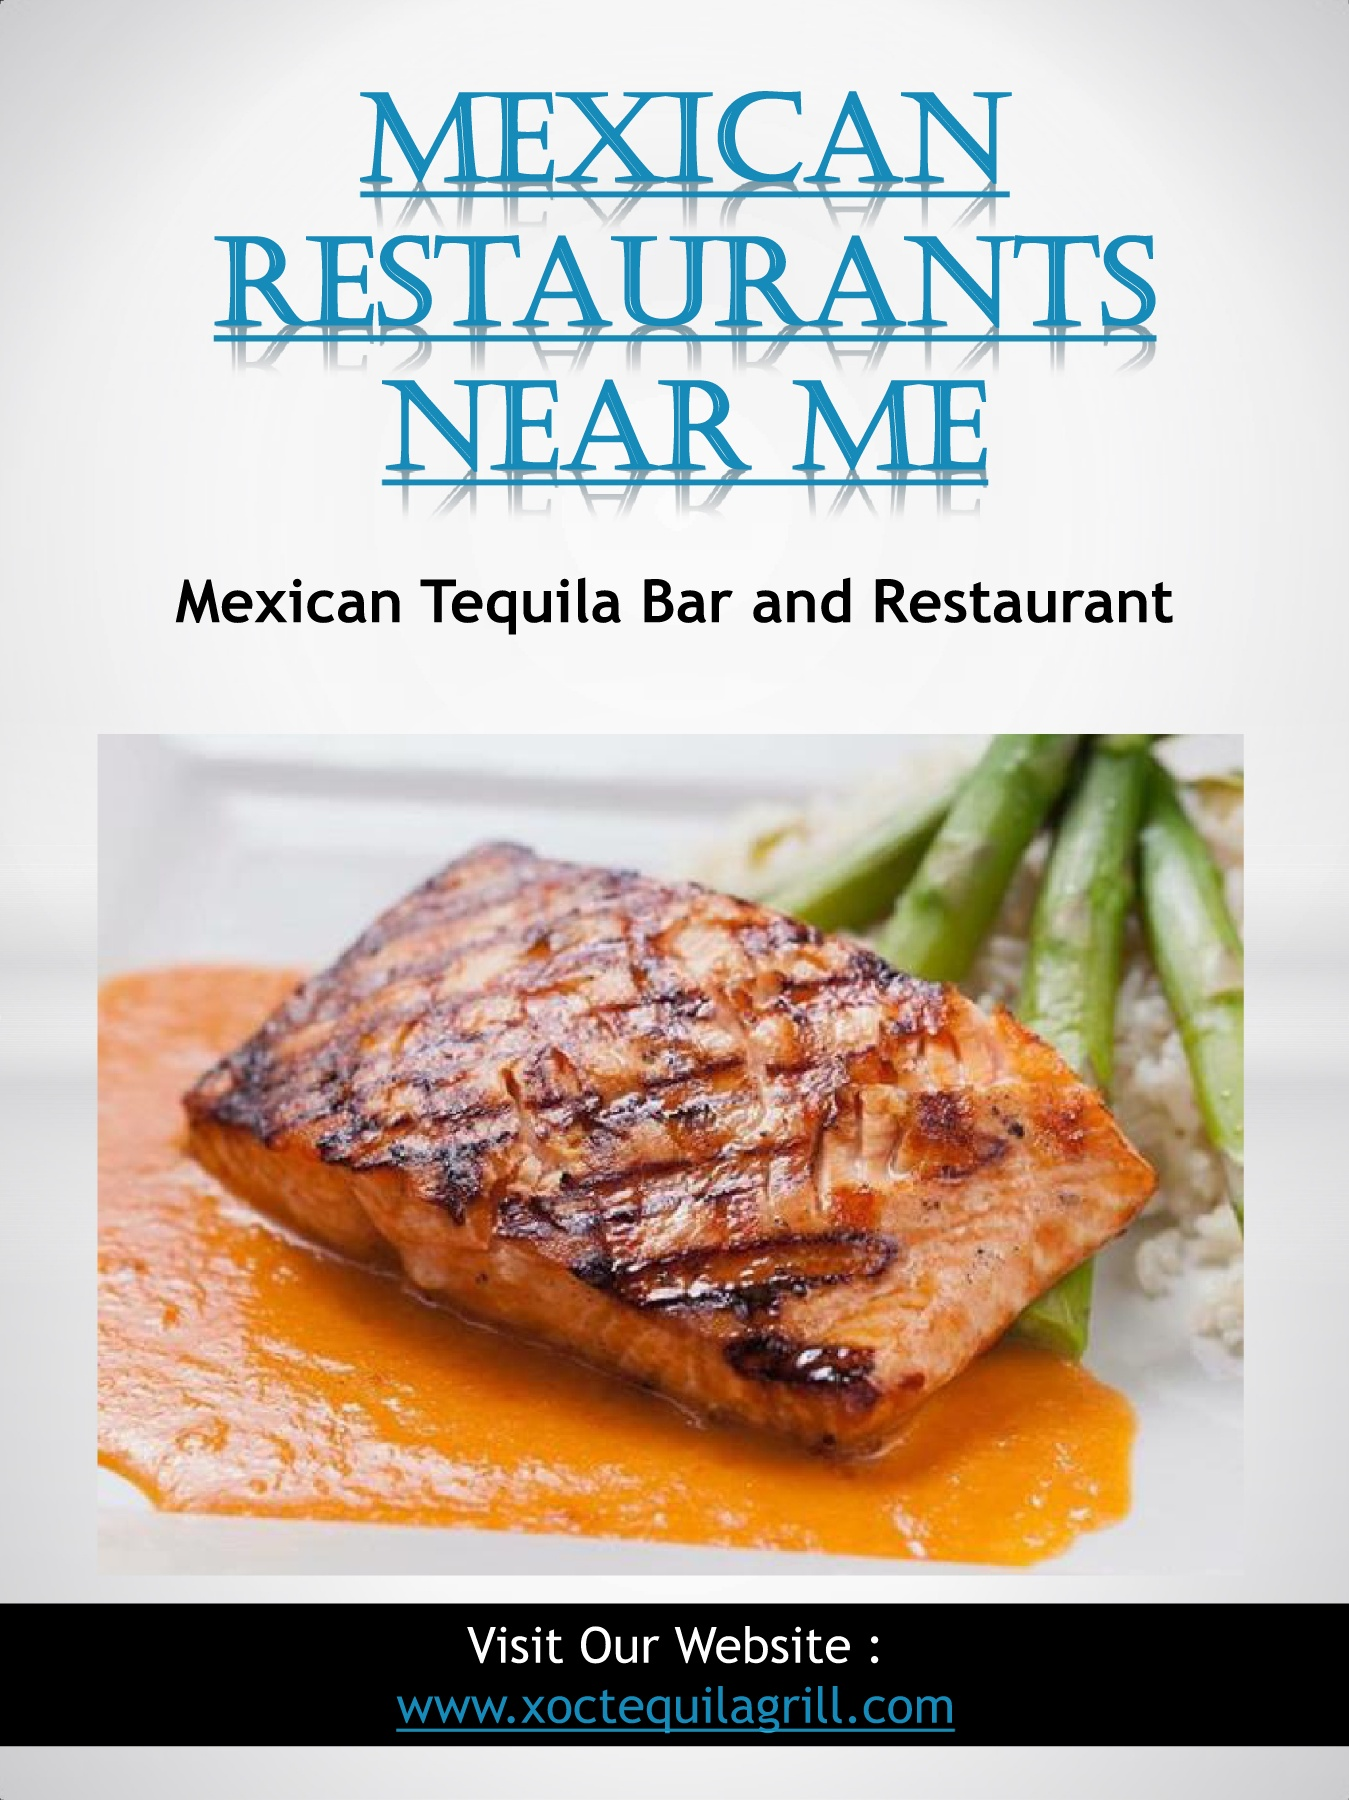 Mexican Restaurants Near Me Pages 1 20 Text Version